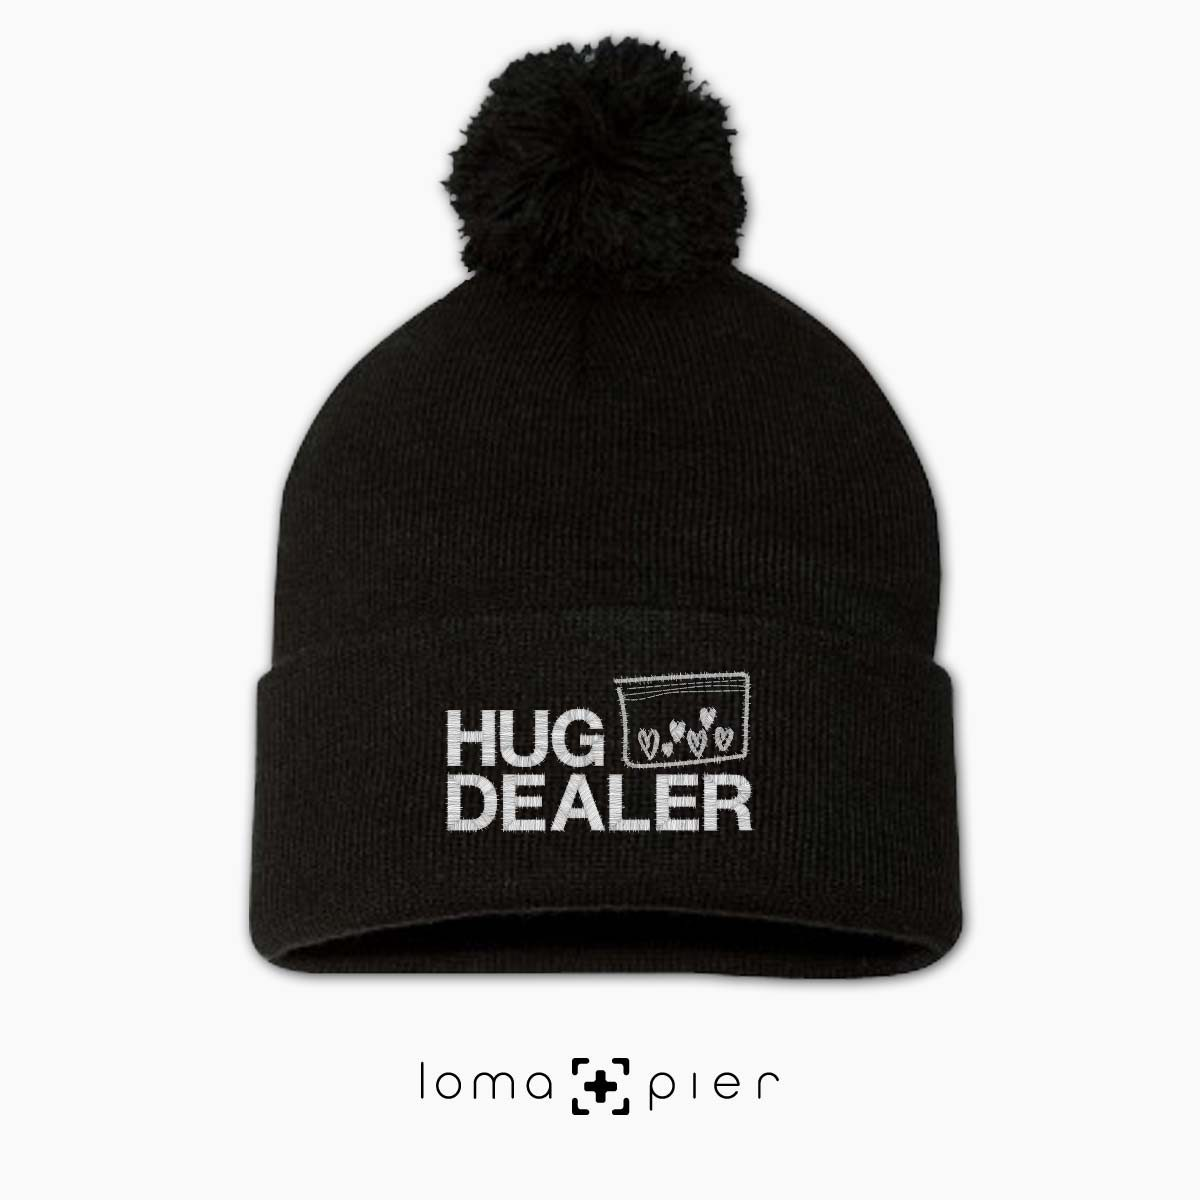 HUG DEALER icon embroidered on a black pom pom beanie with white thread by loma+pier hat store